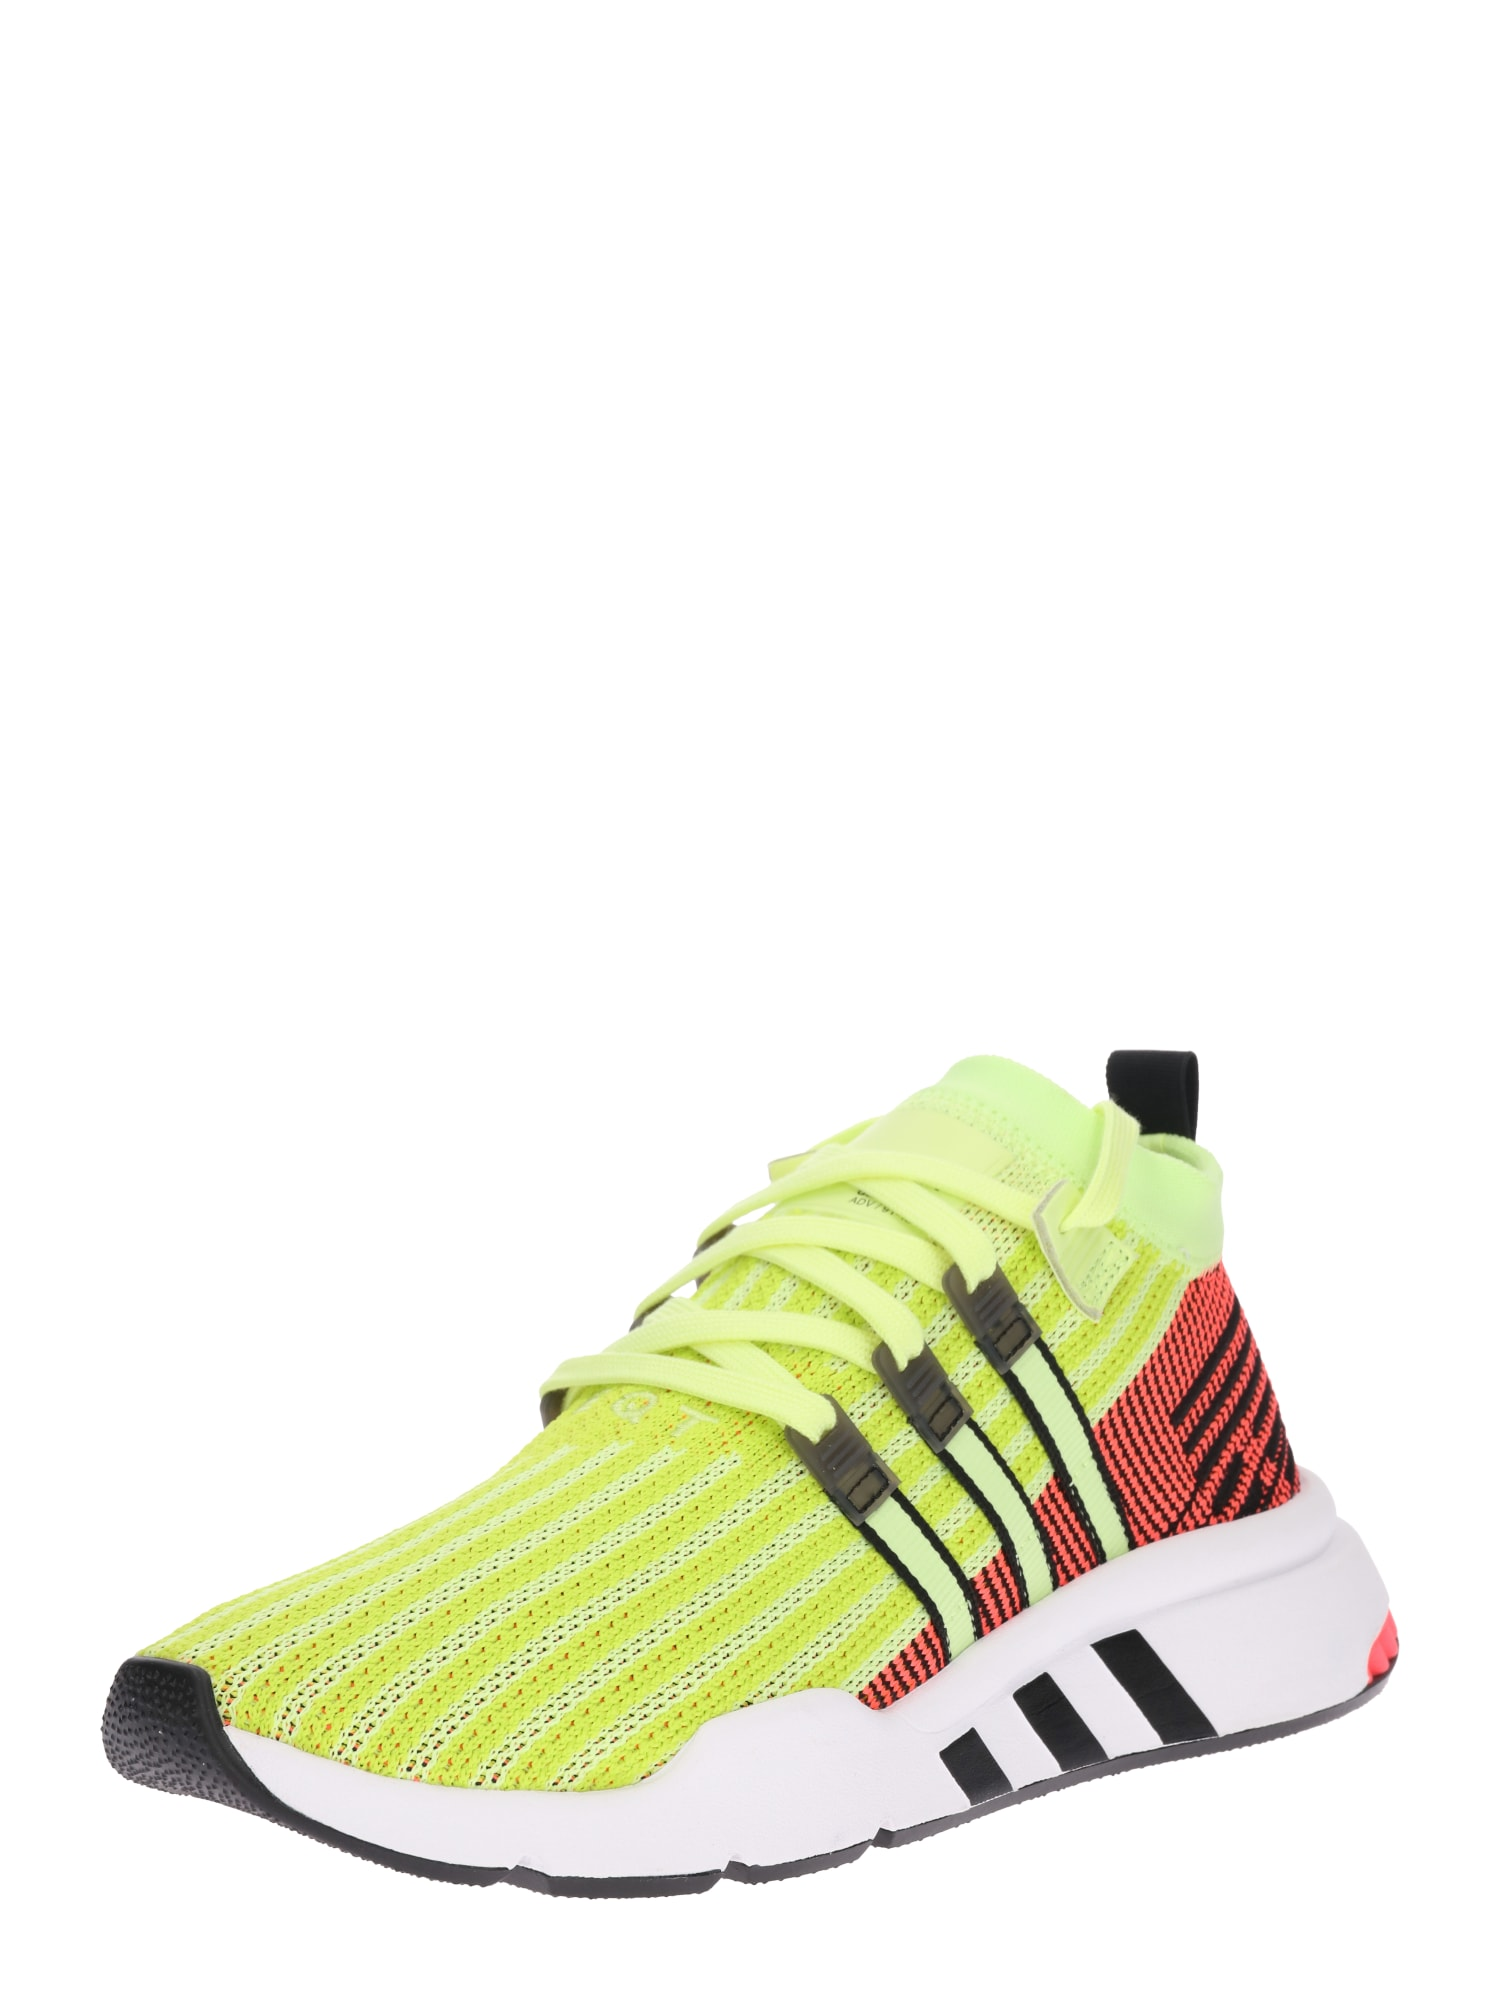 ADIDAS ORIGINALS, Sneakers laag 'EQT SUPPORT', geel / rood